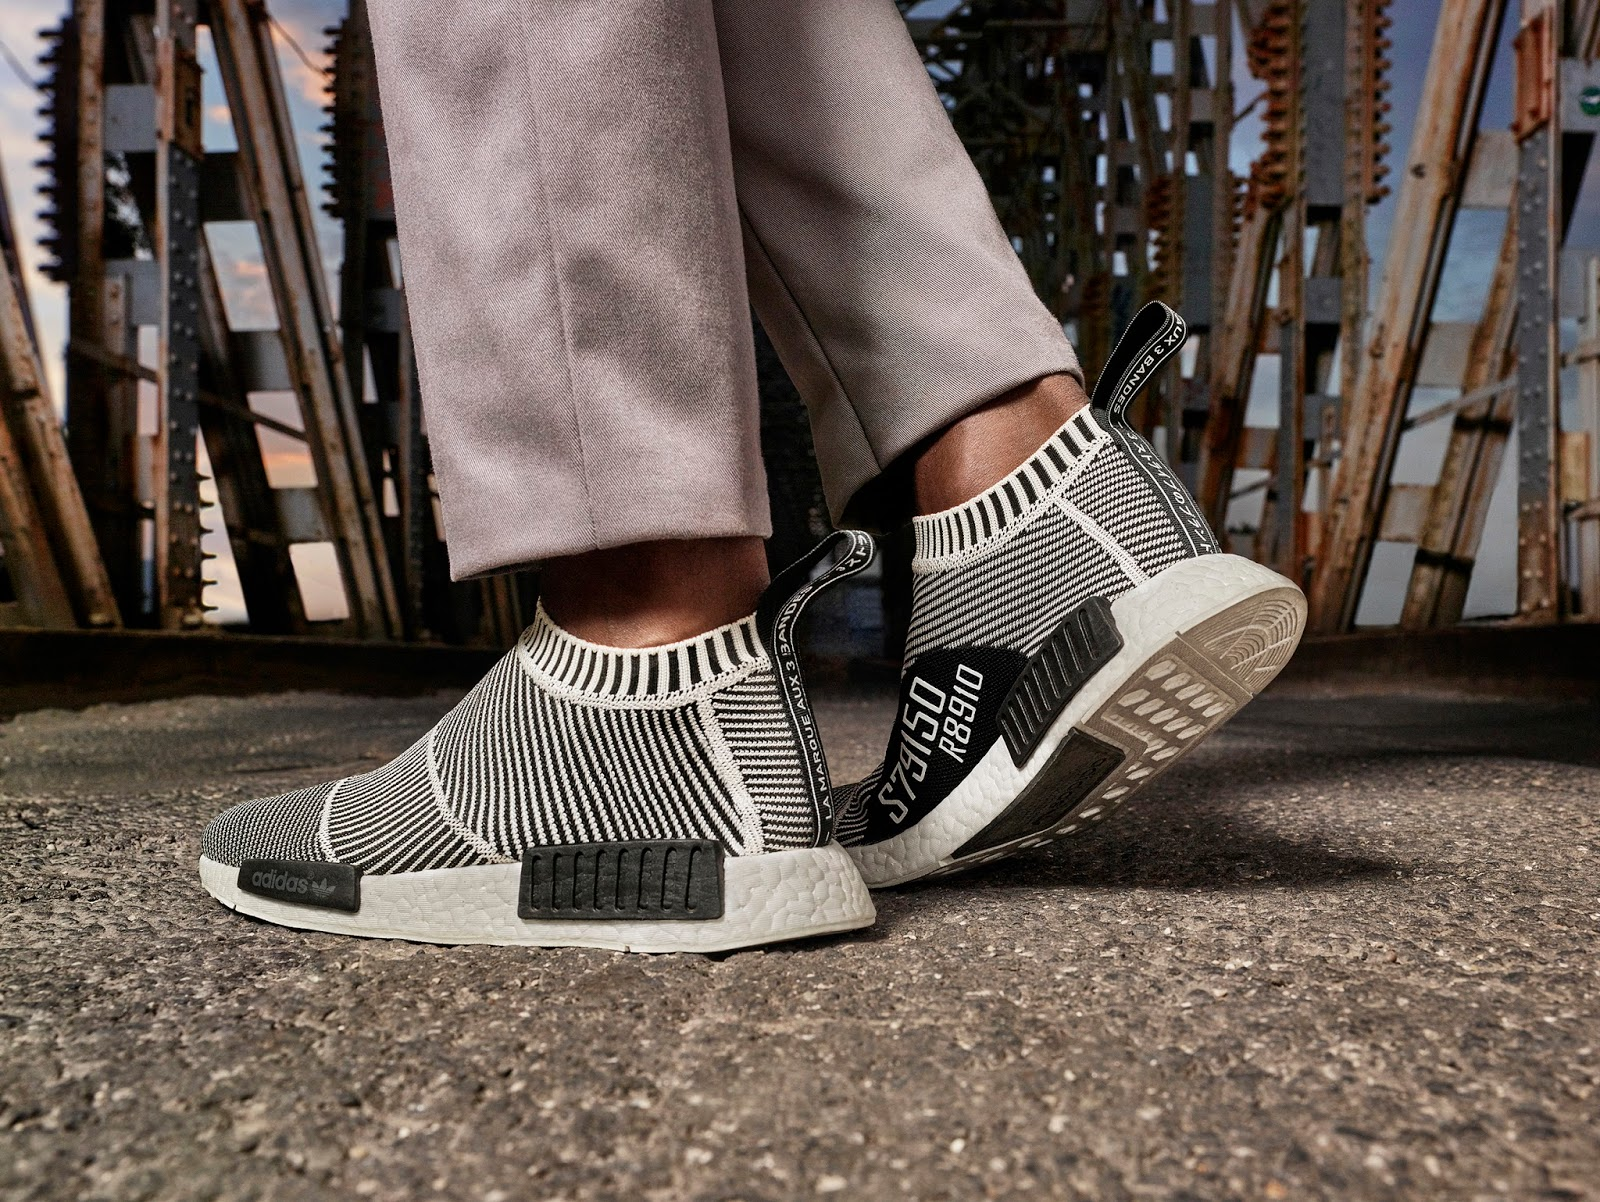 39f480ba5 adidas Originals debuts a brand new mid-cut iteration of the NMD model -  the NMD City Sock. The NMD CS1 is inspired in equal parts by contemporary  ...